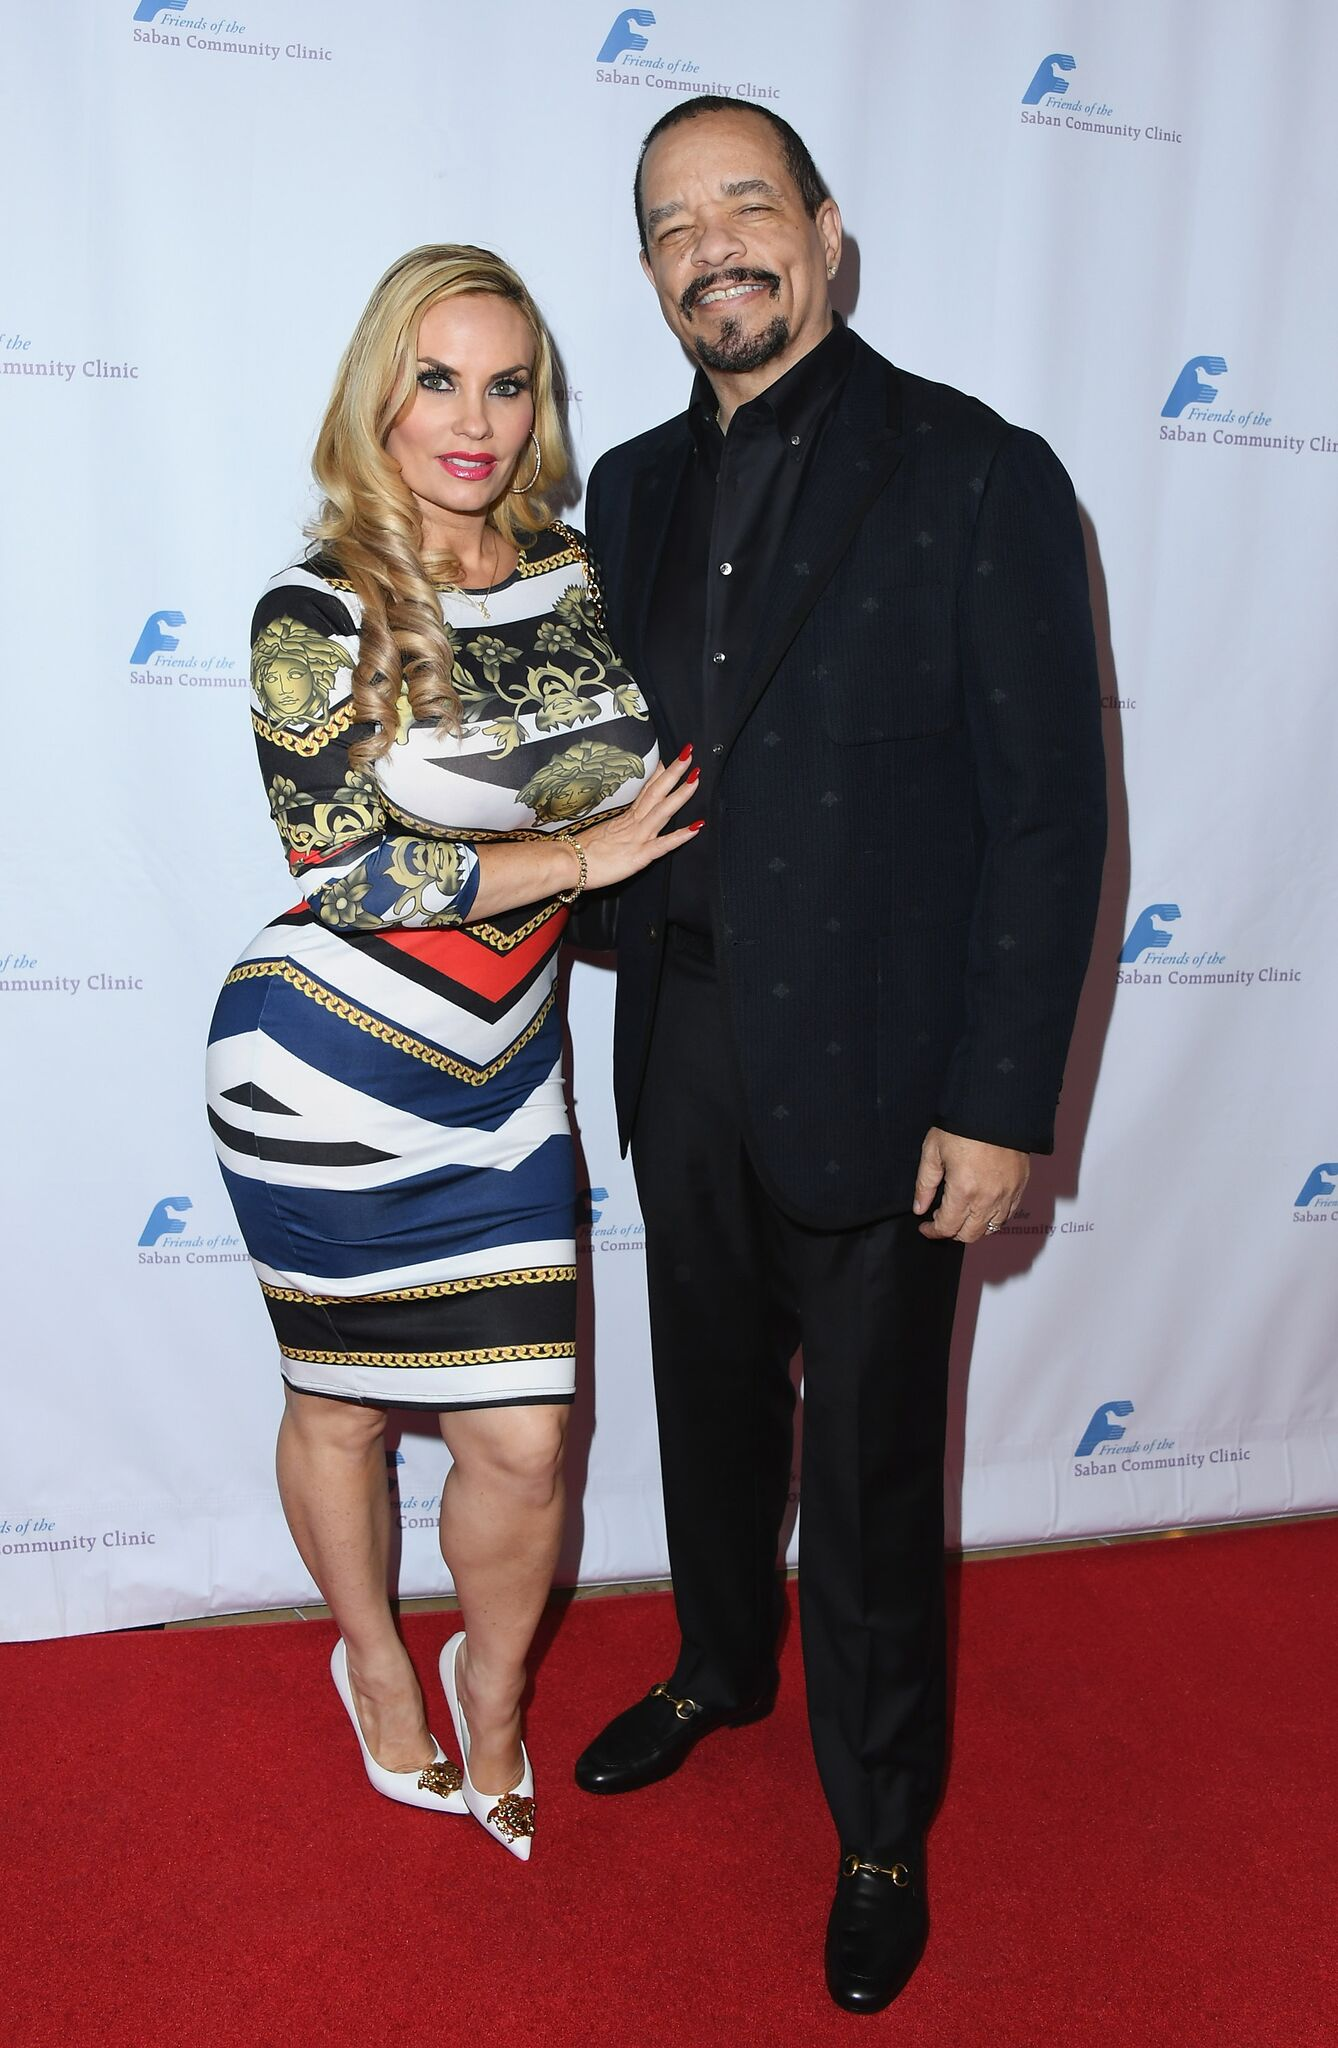 Coco Austin and Ice-T attend Friends Of The Saban Community Clinic's 42nd Annual Gala at The Beverly Hilton Hotel | Getty Images / Global Images Ukraine